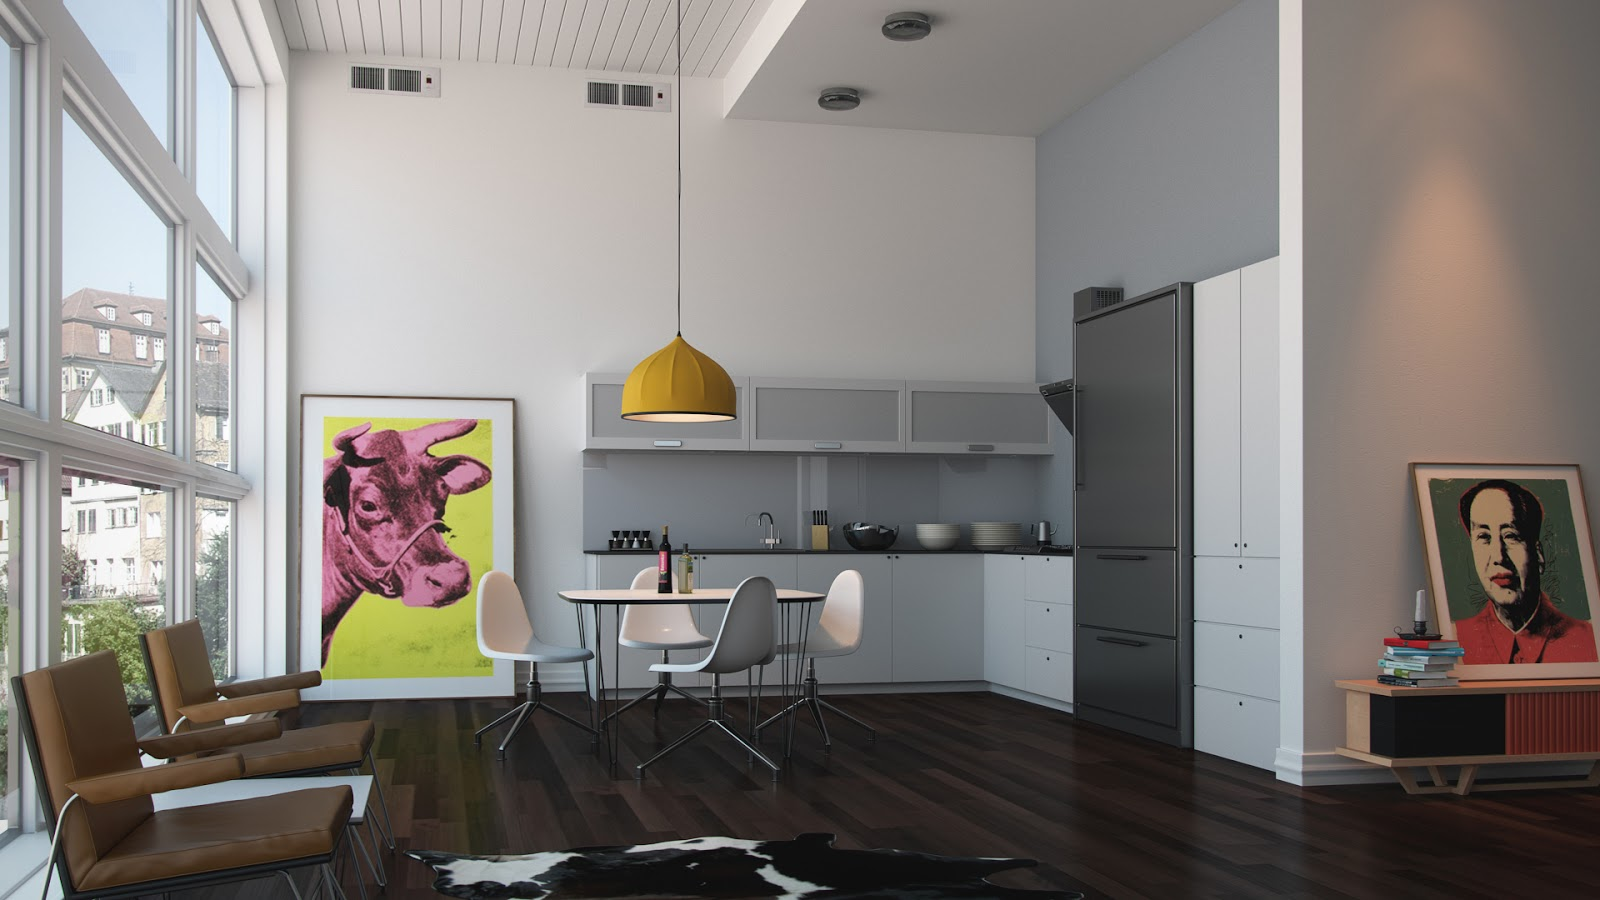 Download Free 3ds Max And Vray Interior Scene Computer Graphics Daily News